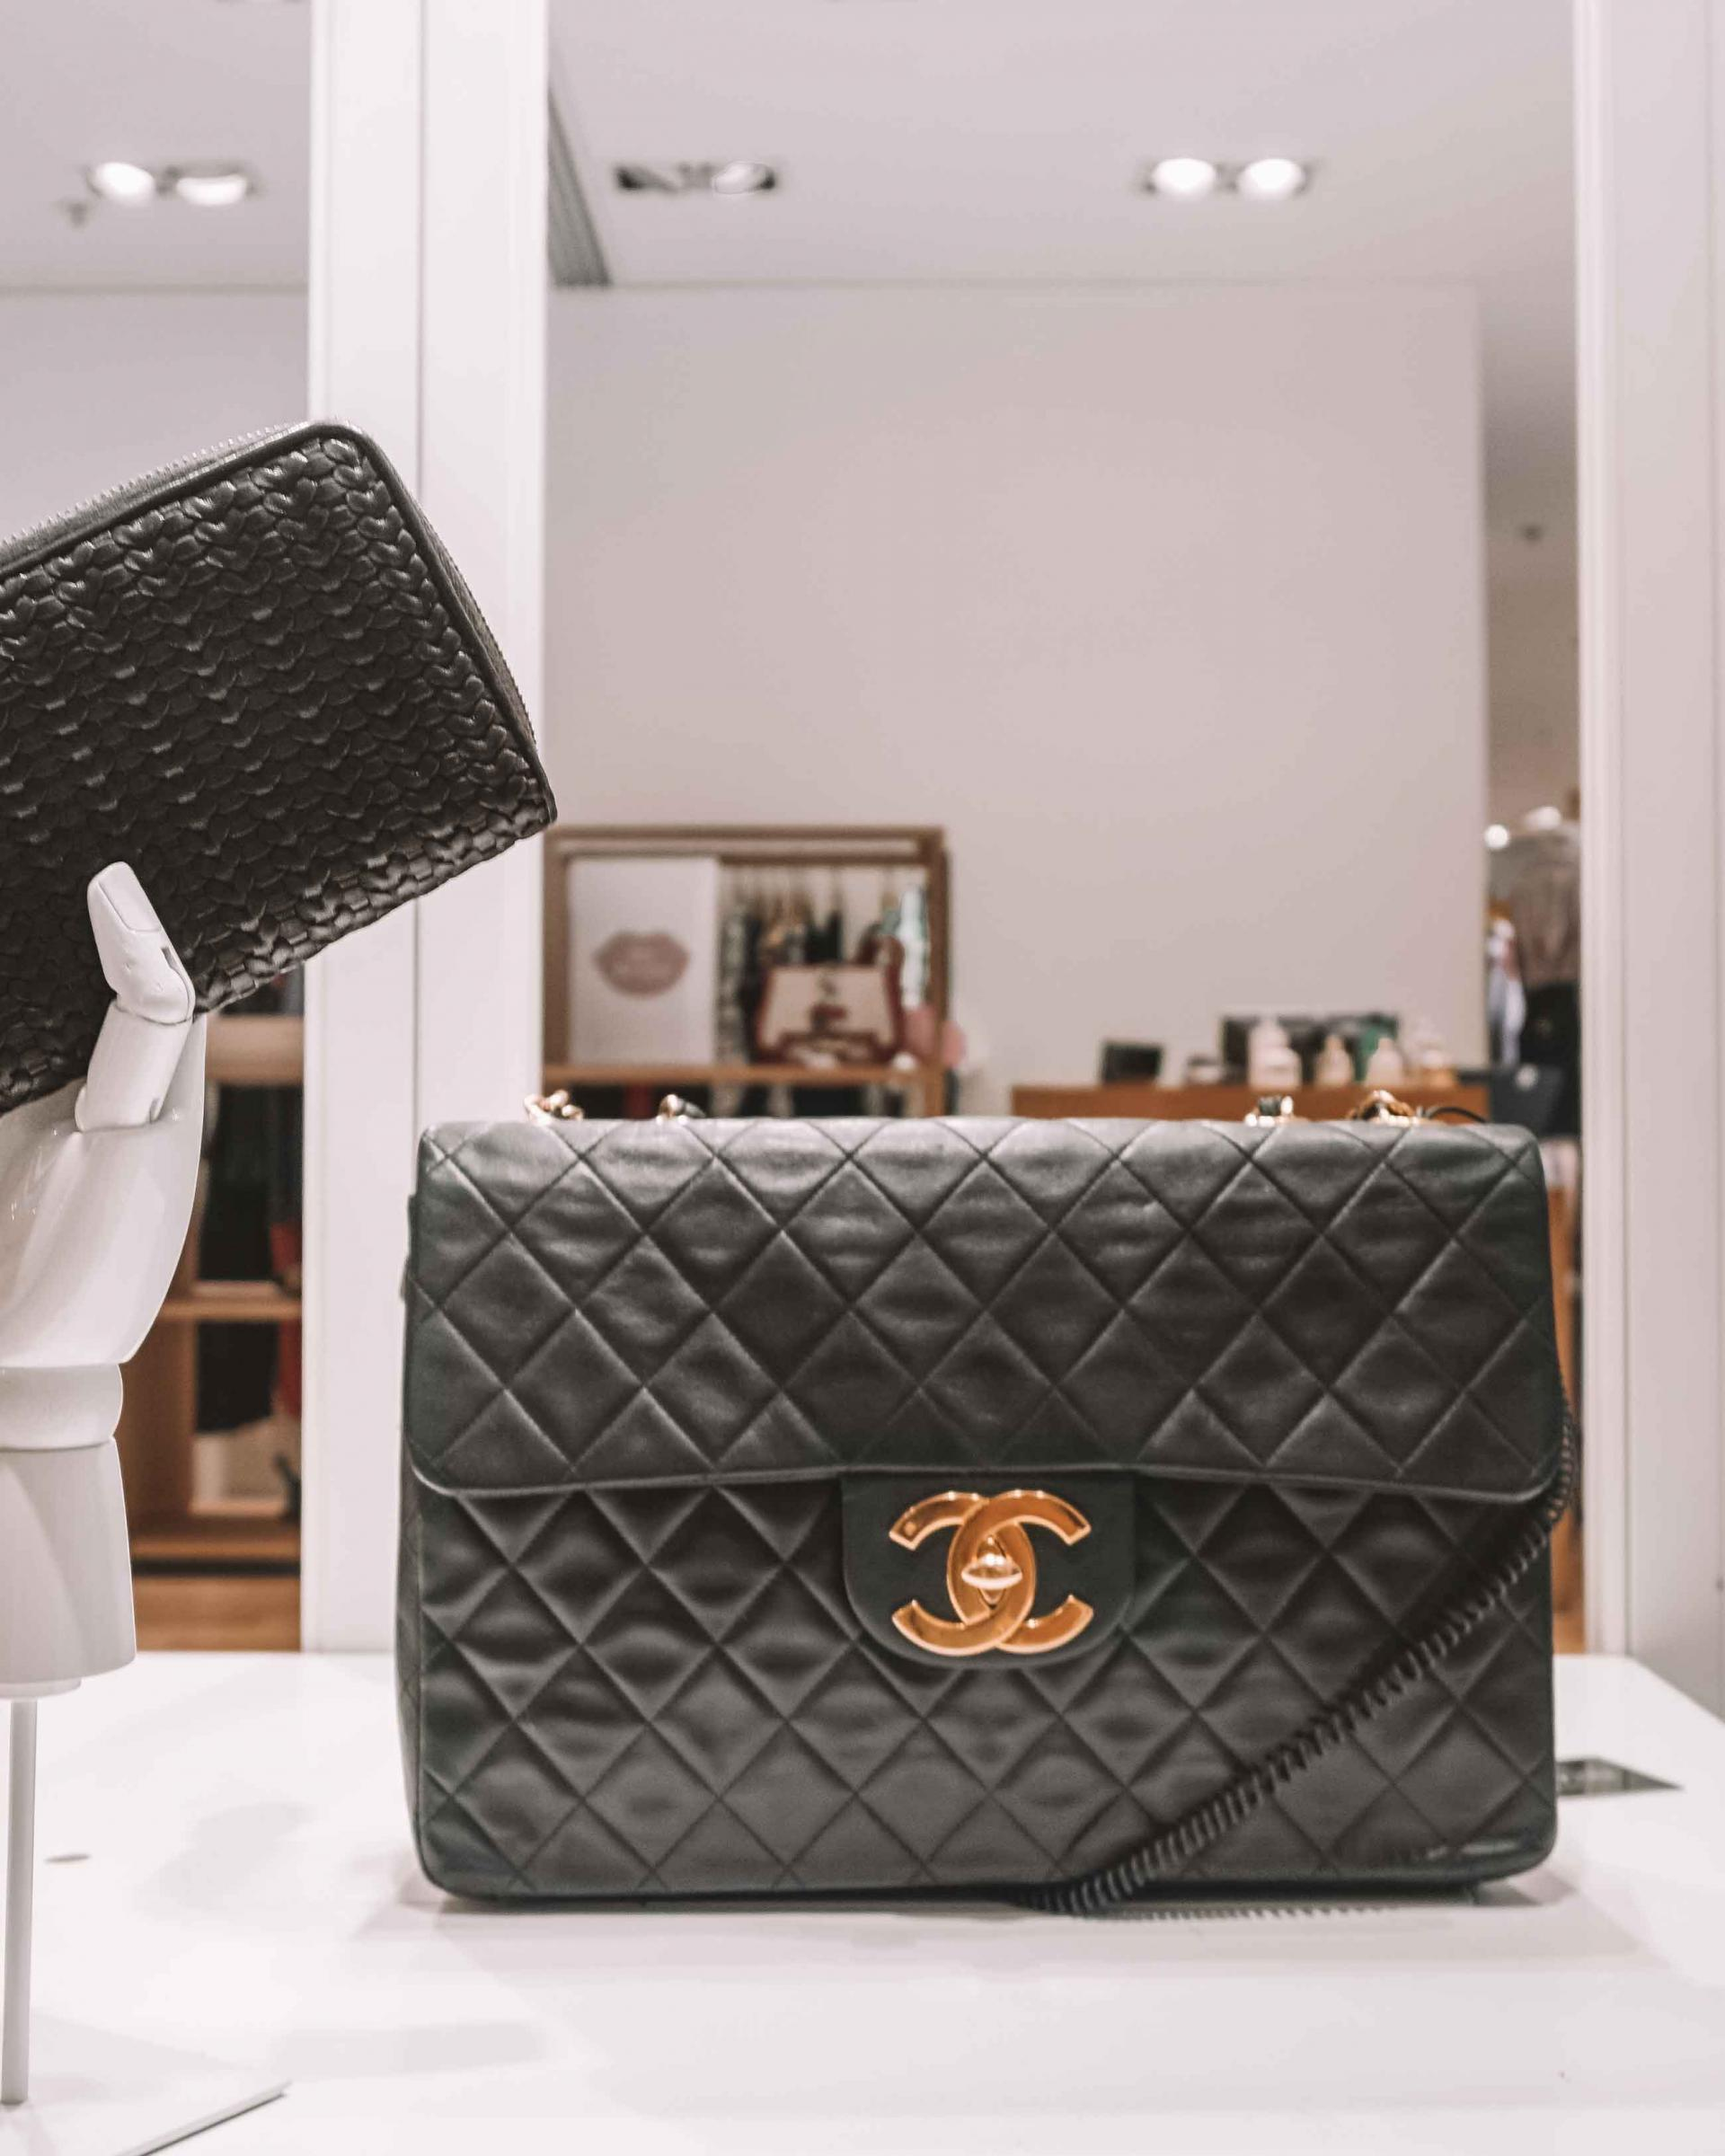 chanel handbags are cheaper in Paris